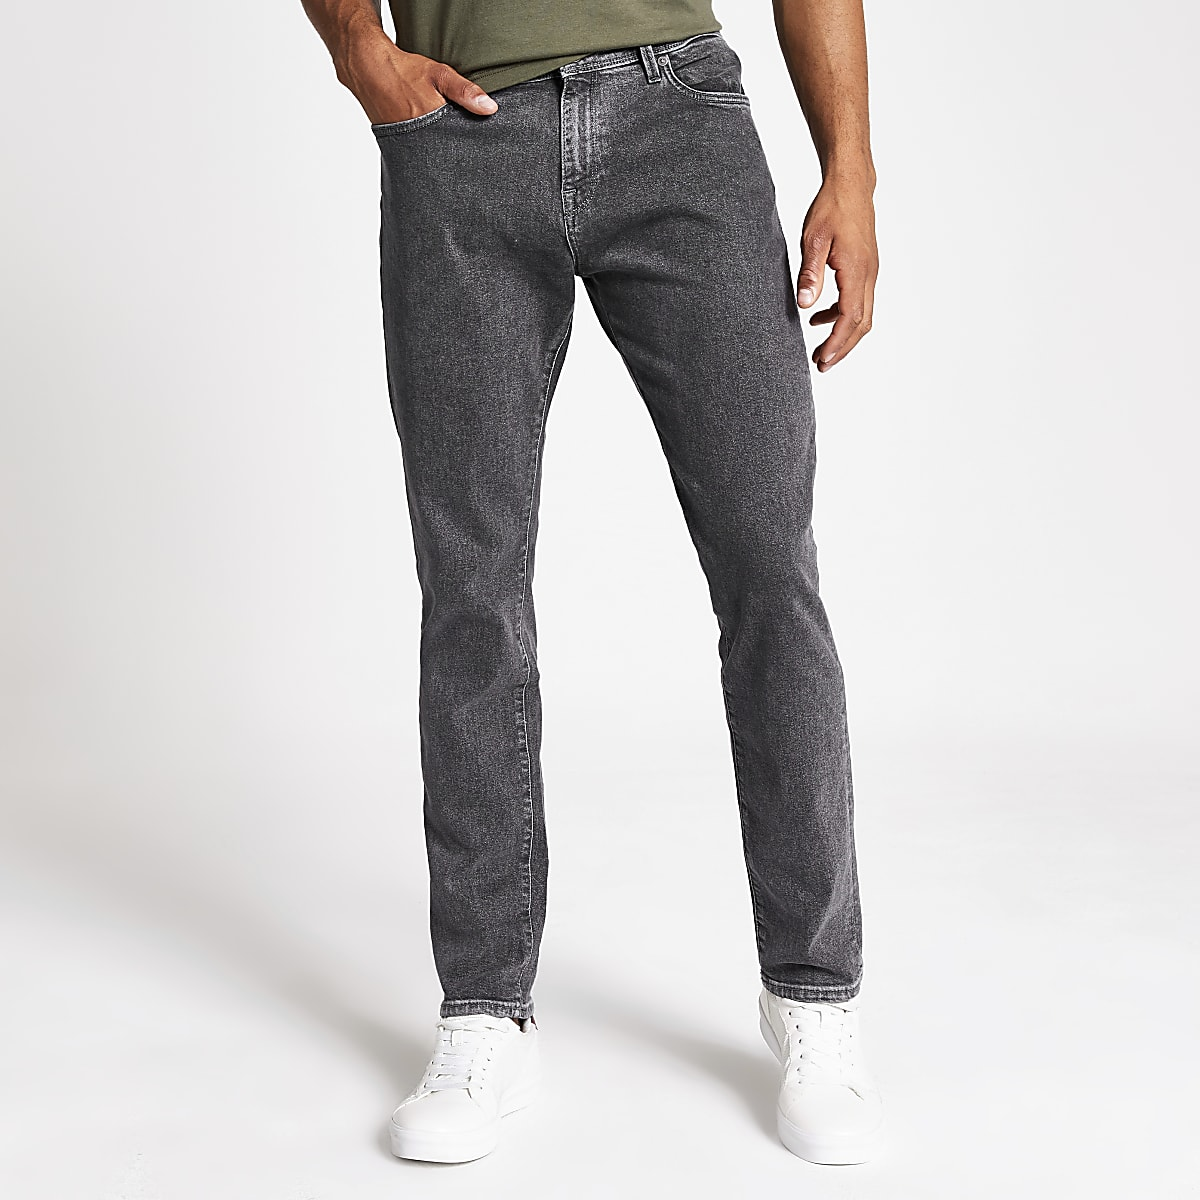 Selected Homme Leon grey slim fit jeans